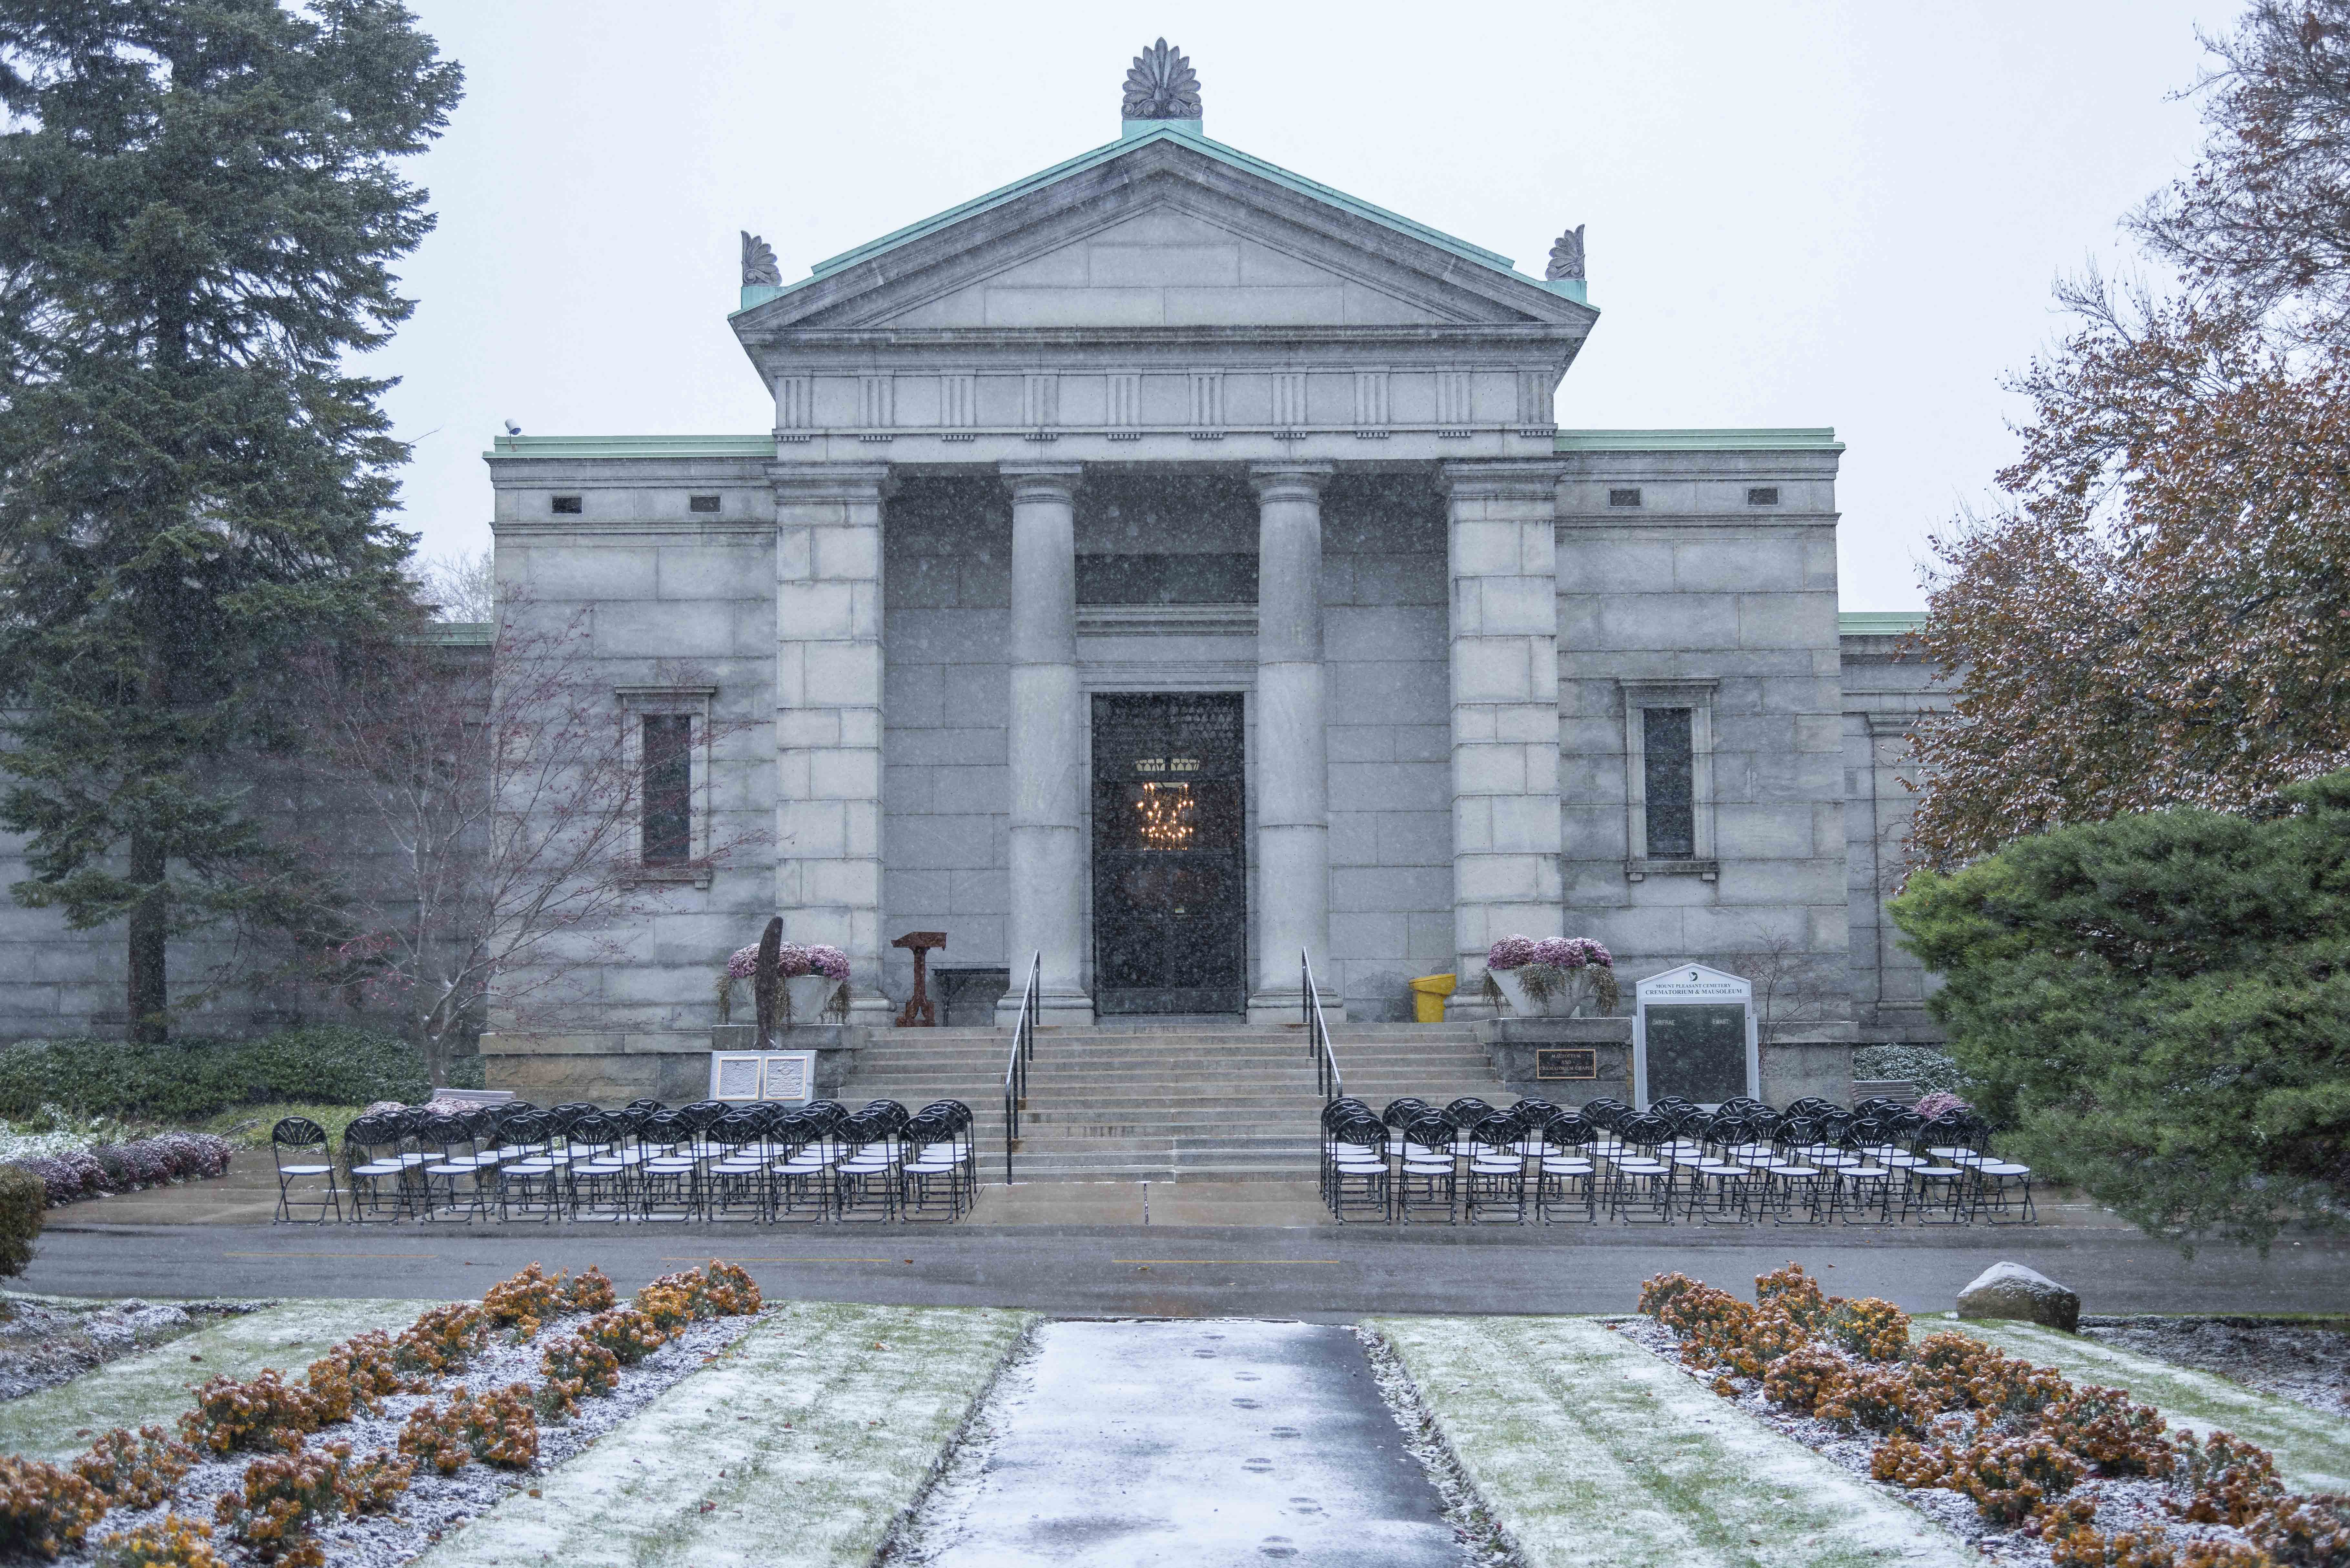 All is in readiness for the 2019 Remembrance Day ceremony in front of the mausoleum at Mount Pleasant Cemetery, Toronto, where Wing Commander William Barker, VC, is interred. PHOTO: Corporal Lynette Ai Dang, BM10-2019-0359-001